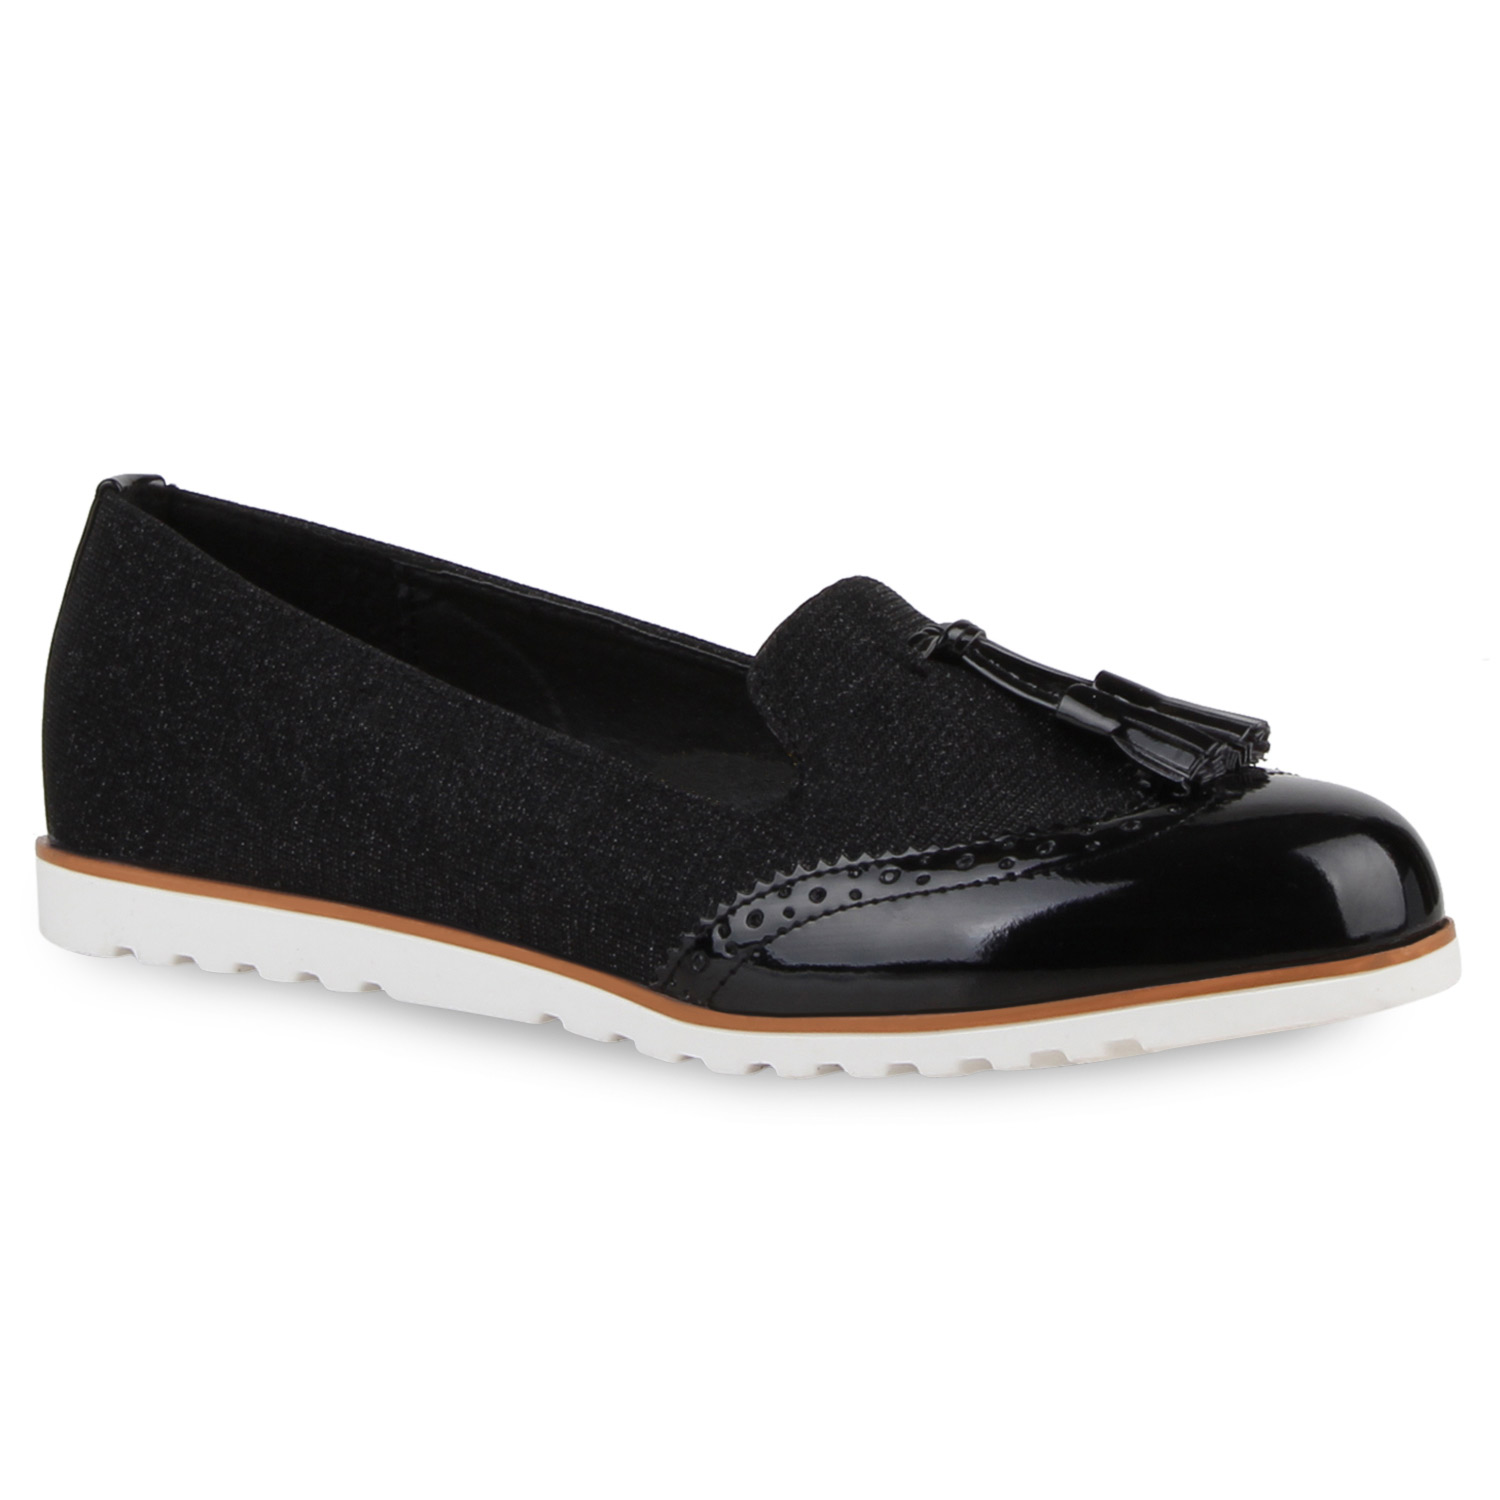 modische damen slipper glitzer tassel loafers lack profil sohle 811006 new look ebay. Black Bedroom Furniture Sets. Home Design Ideas